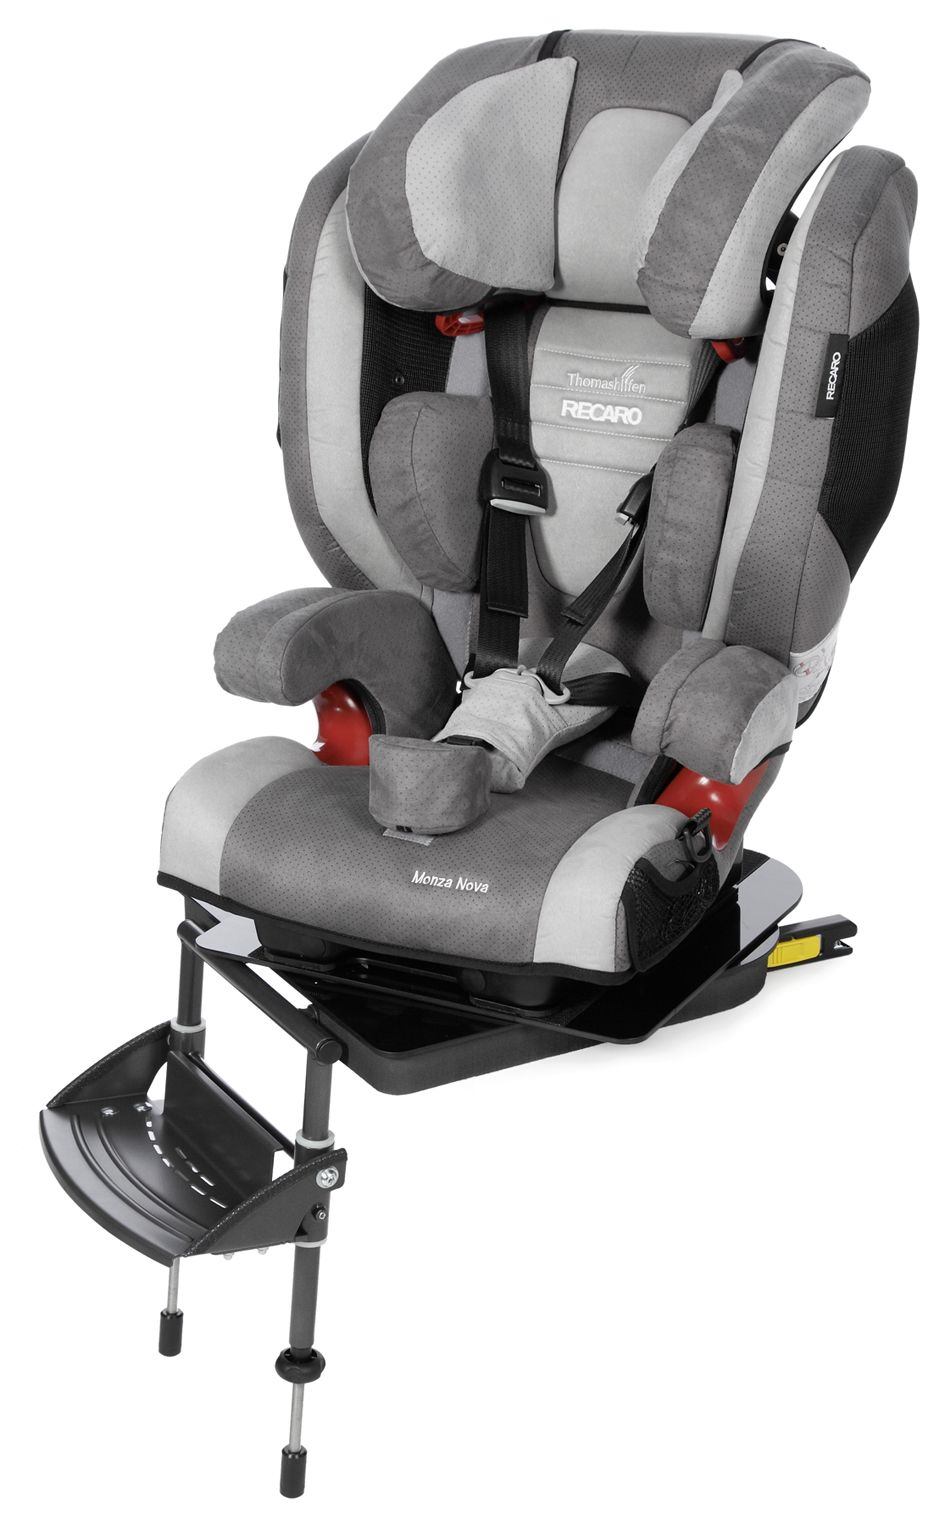 special needs recaro monza nova reha can fit a child up to approximately 59 inches tall so your. Black Bedroom Furniture Sets. Home Design Ideas